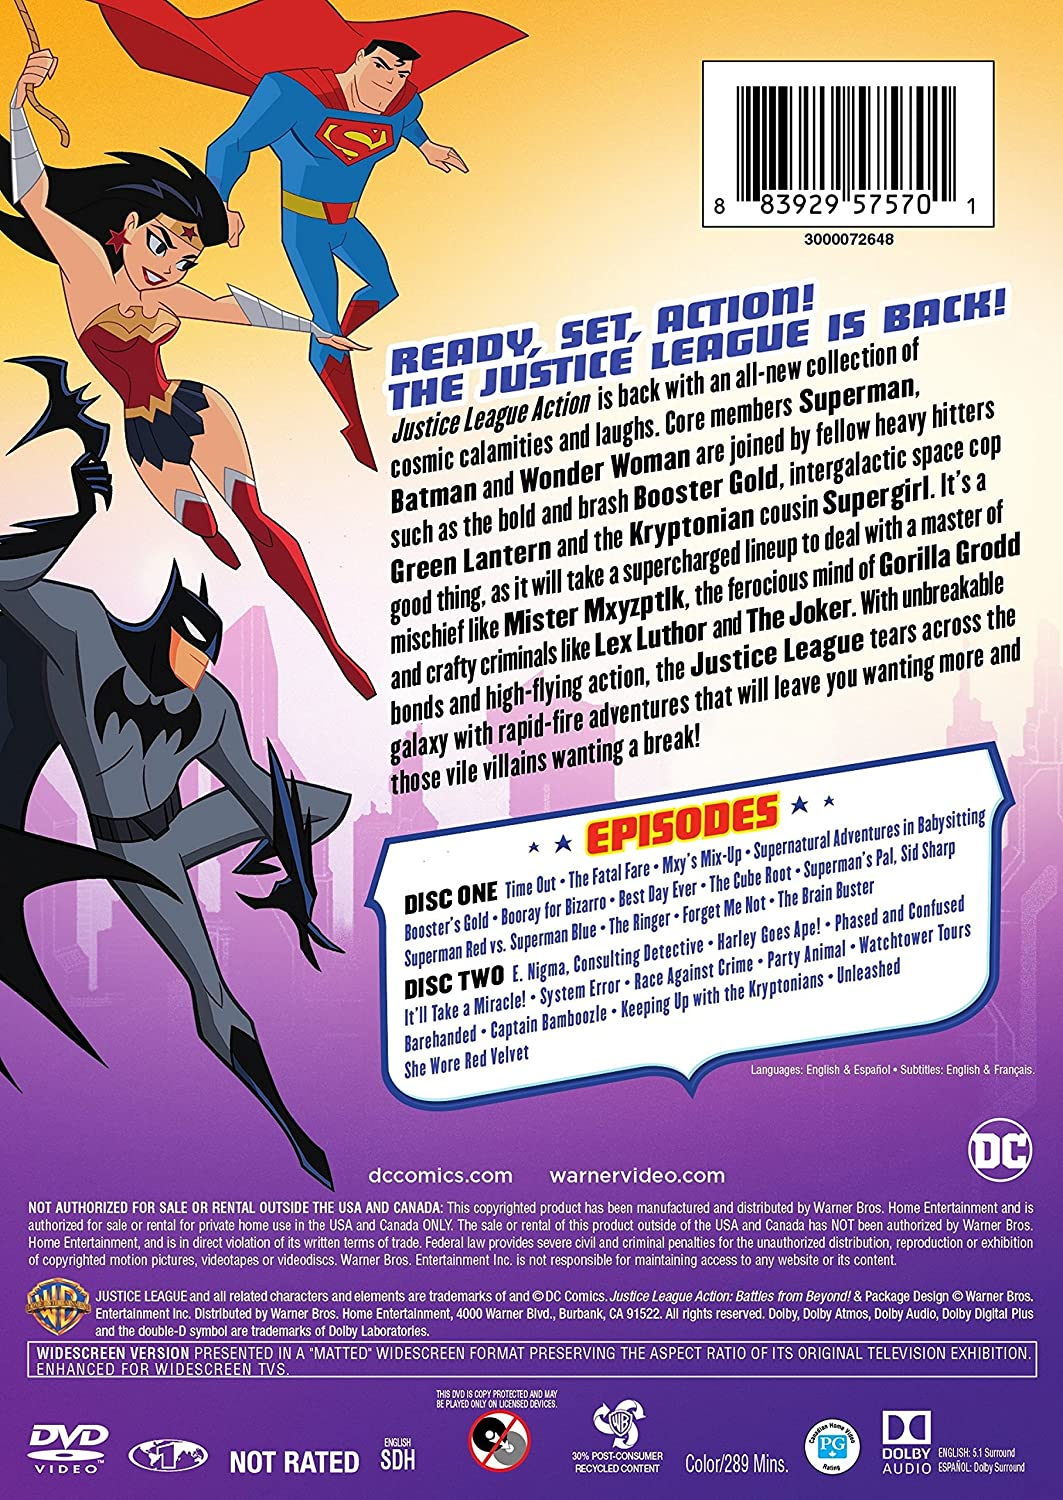 Amazon.com: Justice League: Action Season 1 Part 2 (DVD ...